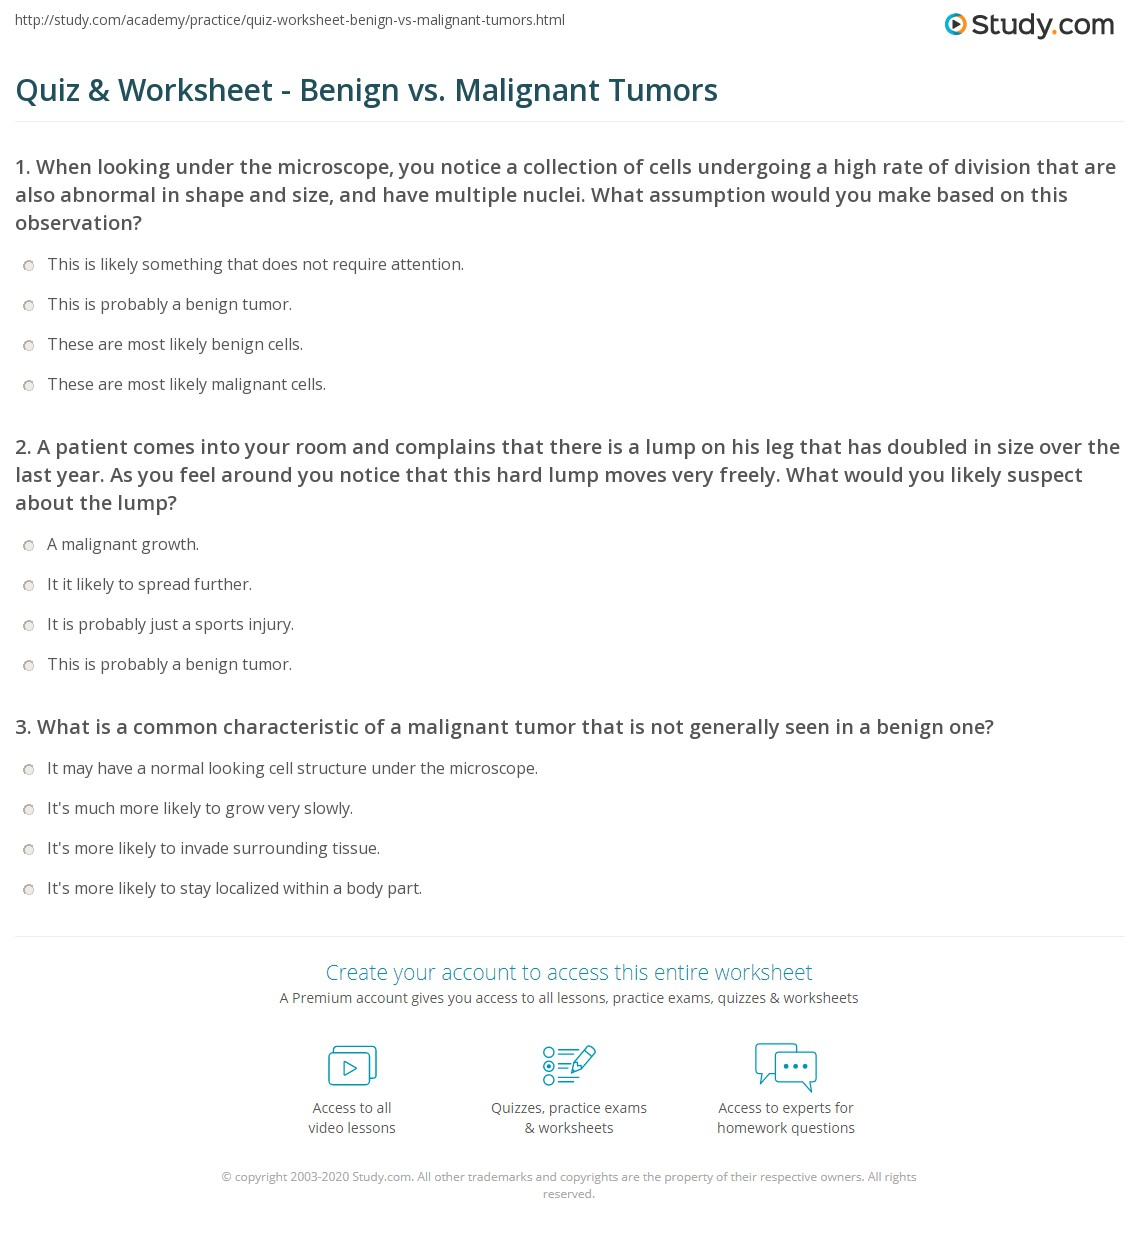 quiz & worksheet - benign vs. malignant tumors | study